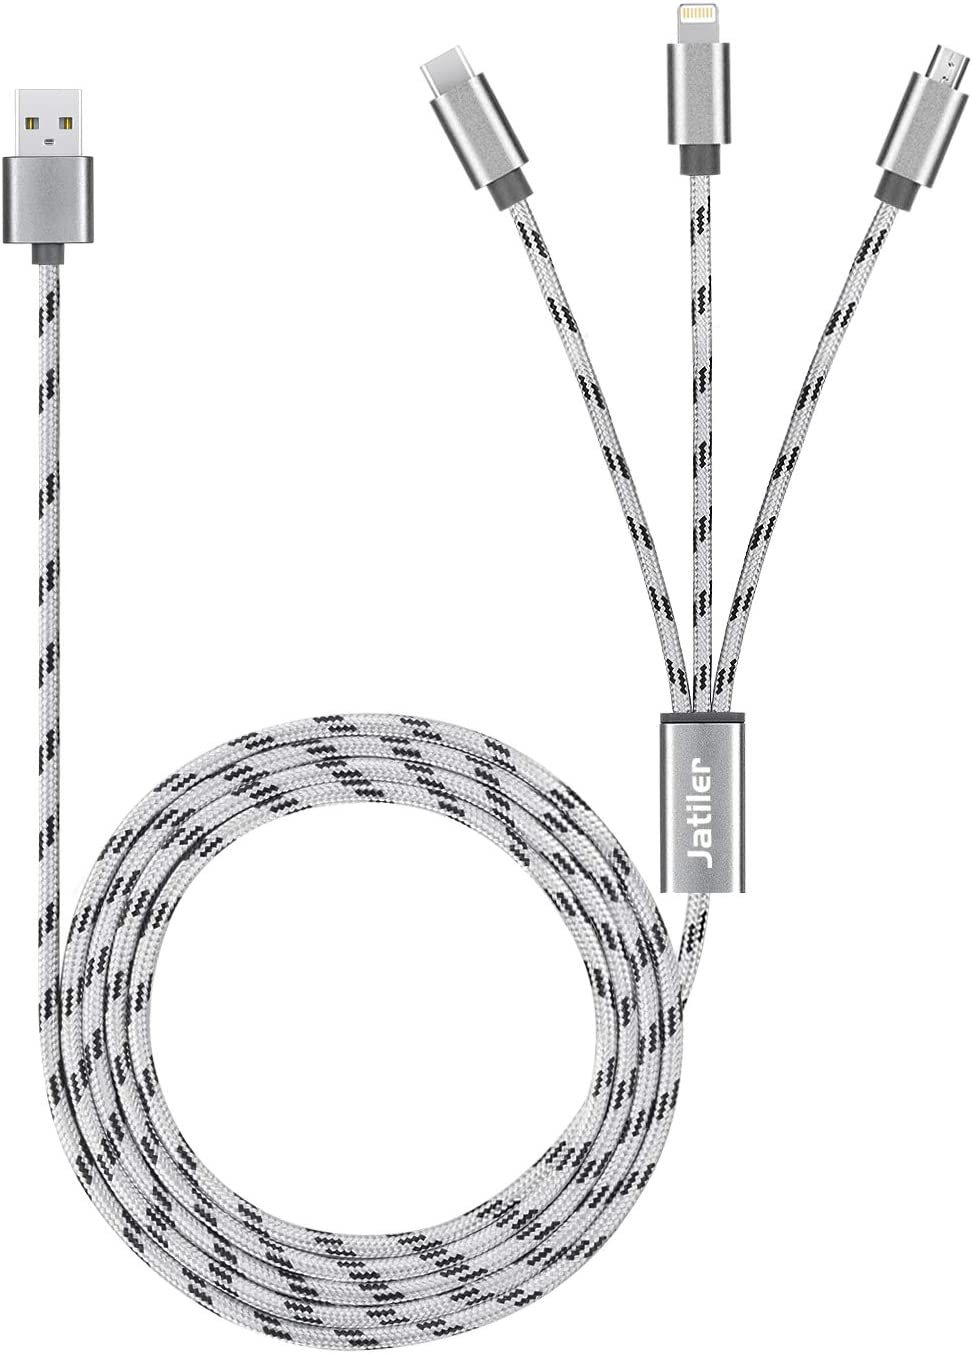 10ft Multi Charger Cable JatilEr Braided Multi Charging Cable 3 in 1 USB Cable Multi USB Charging Cable USB Multi Charger Cable with Pin/Type-C/Micro USB Port Connectors for Cell Phones and More